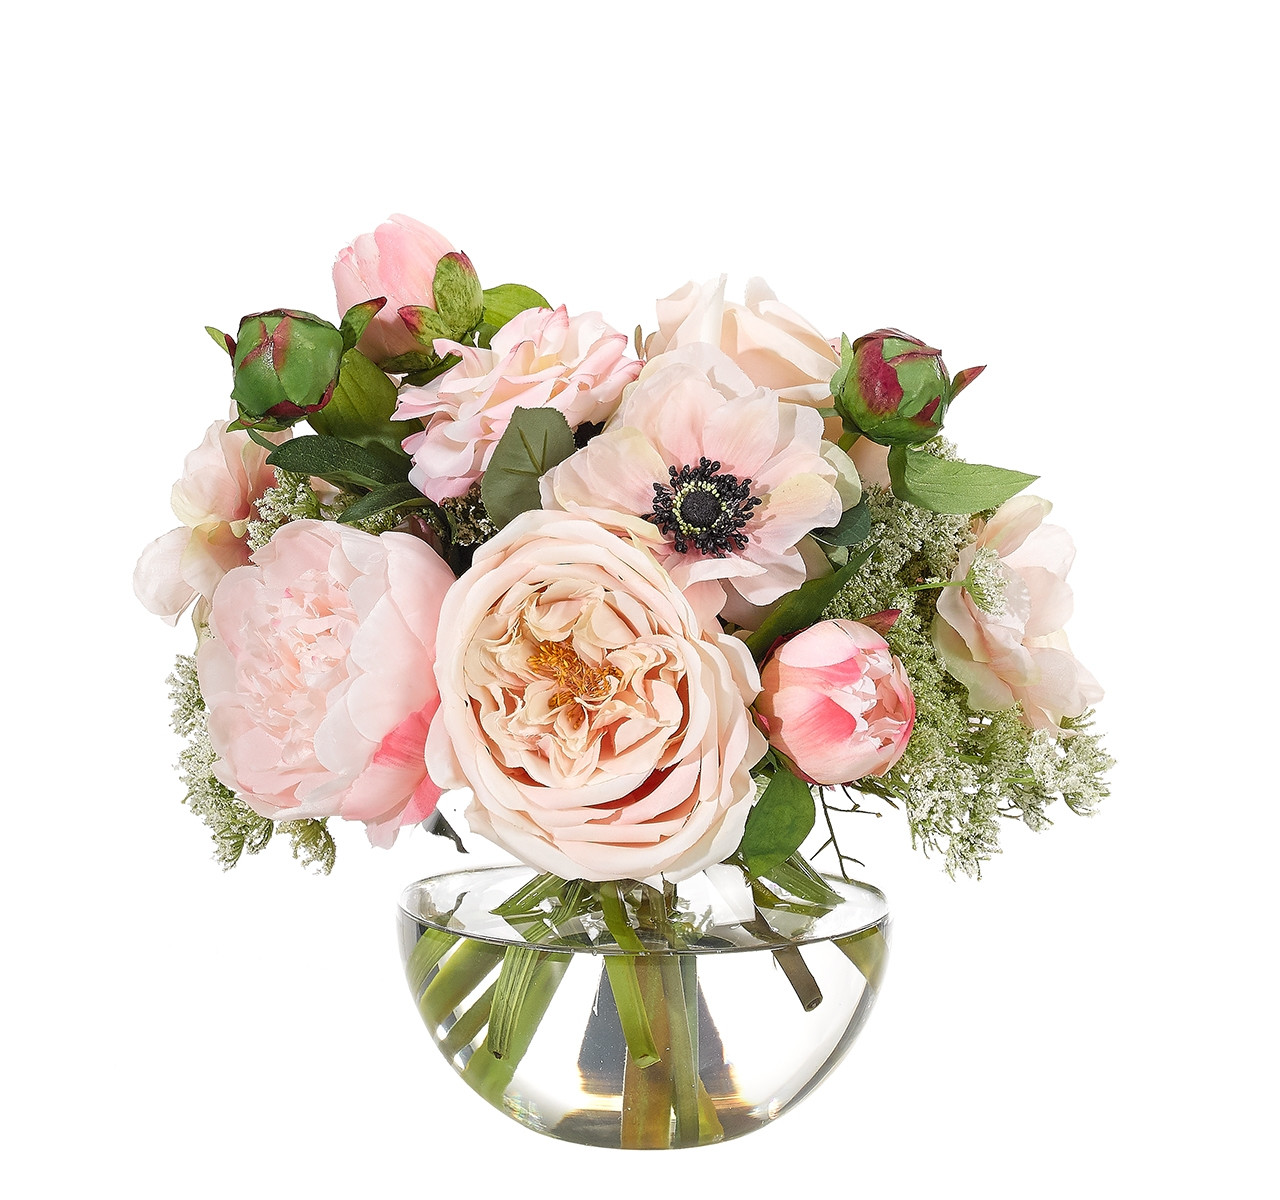 fd1 florist designed bouquet in a vase of ndi faux florals and botanicals throughout custom orders